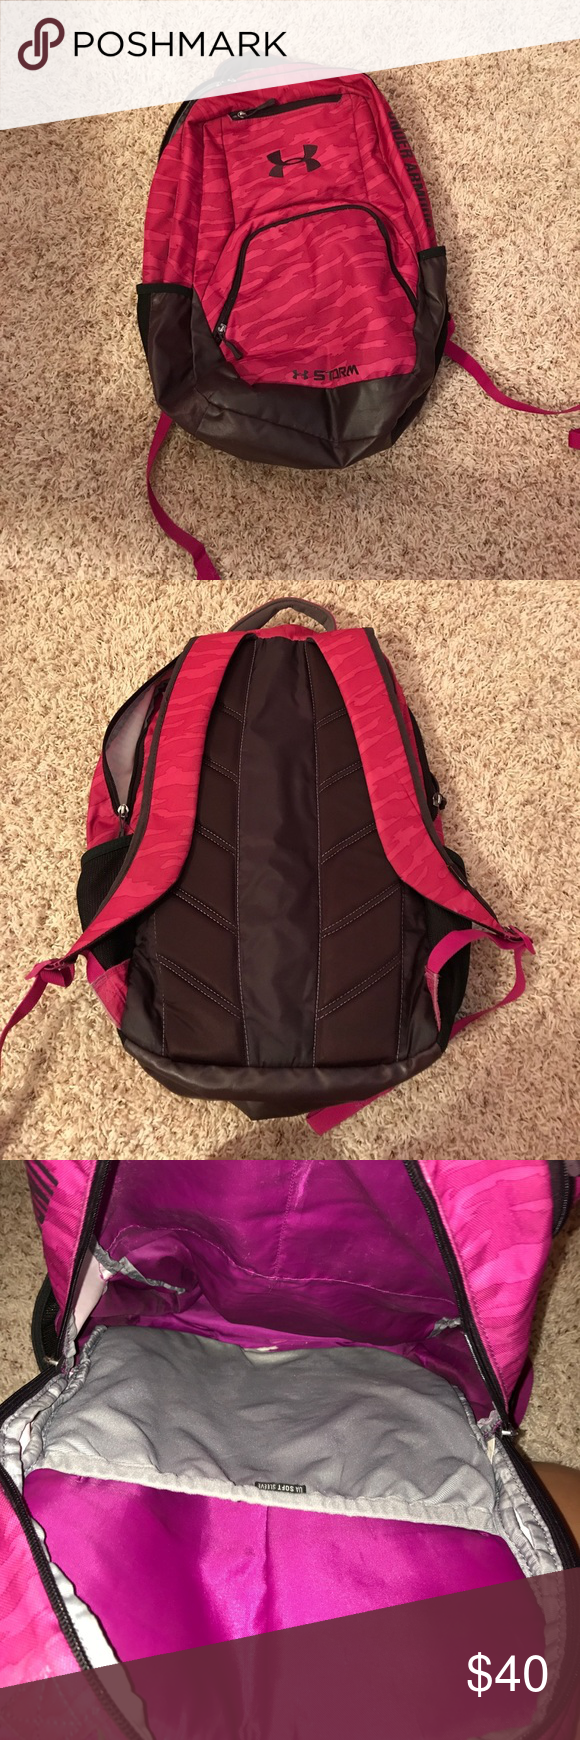 Under Armour Backpack A purple Under Armour backpack that can be used for anything. It's gently used and has a gum stain on the inside as pictured, other then that there are no major signs of wear. Willing to negotiate price Under Armour Bags Backpacks